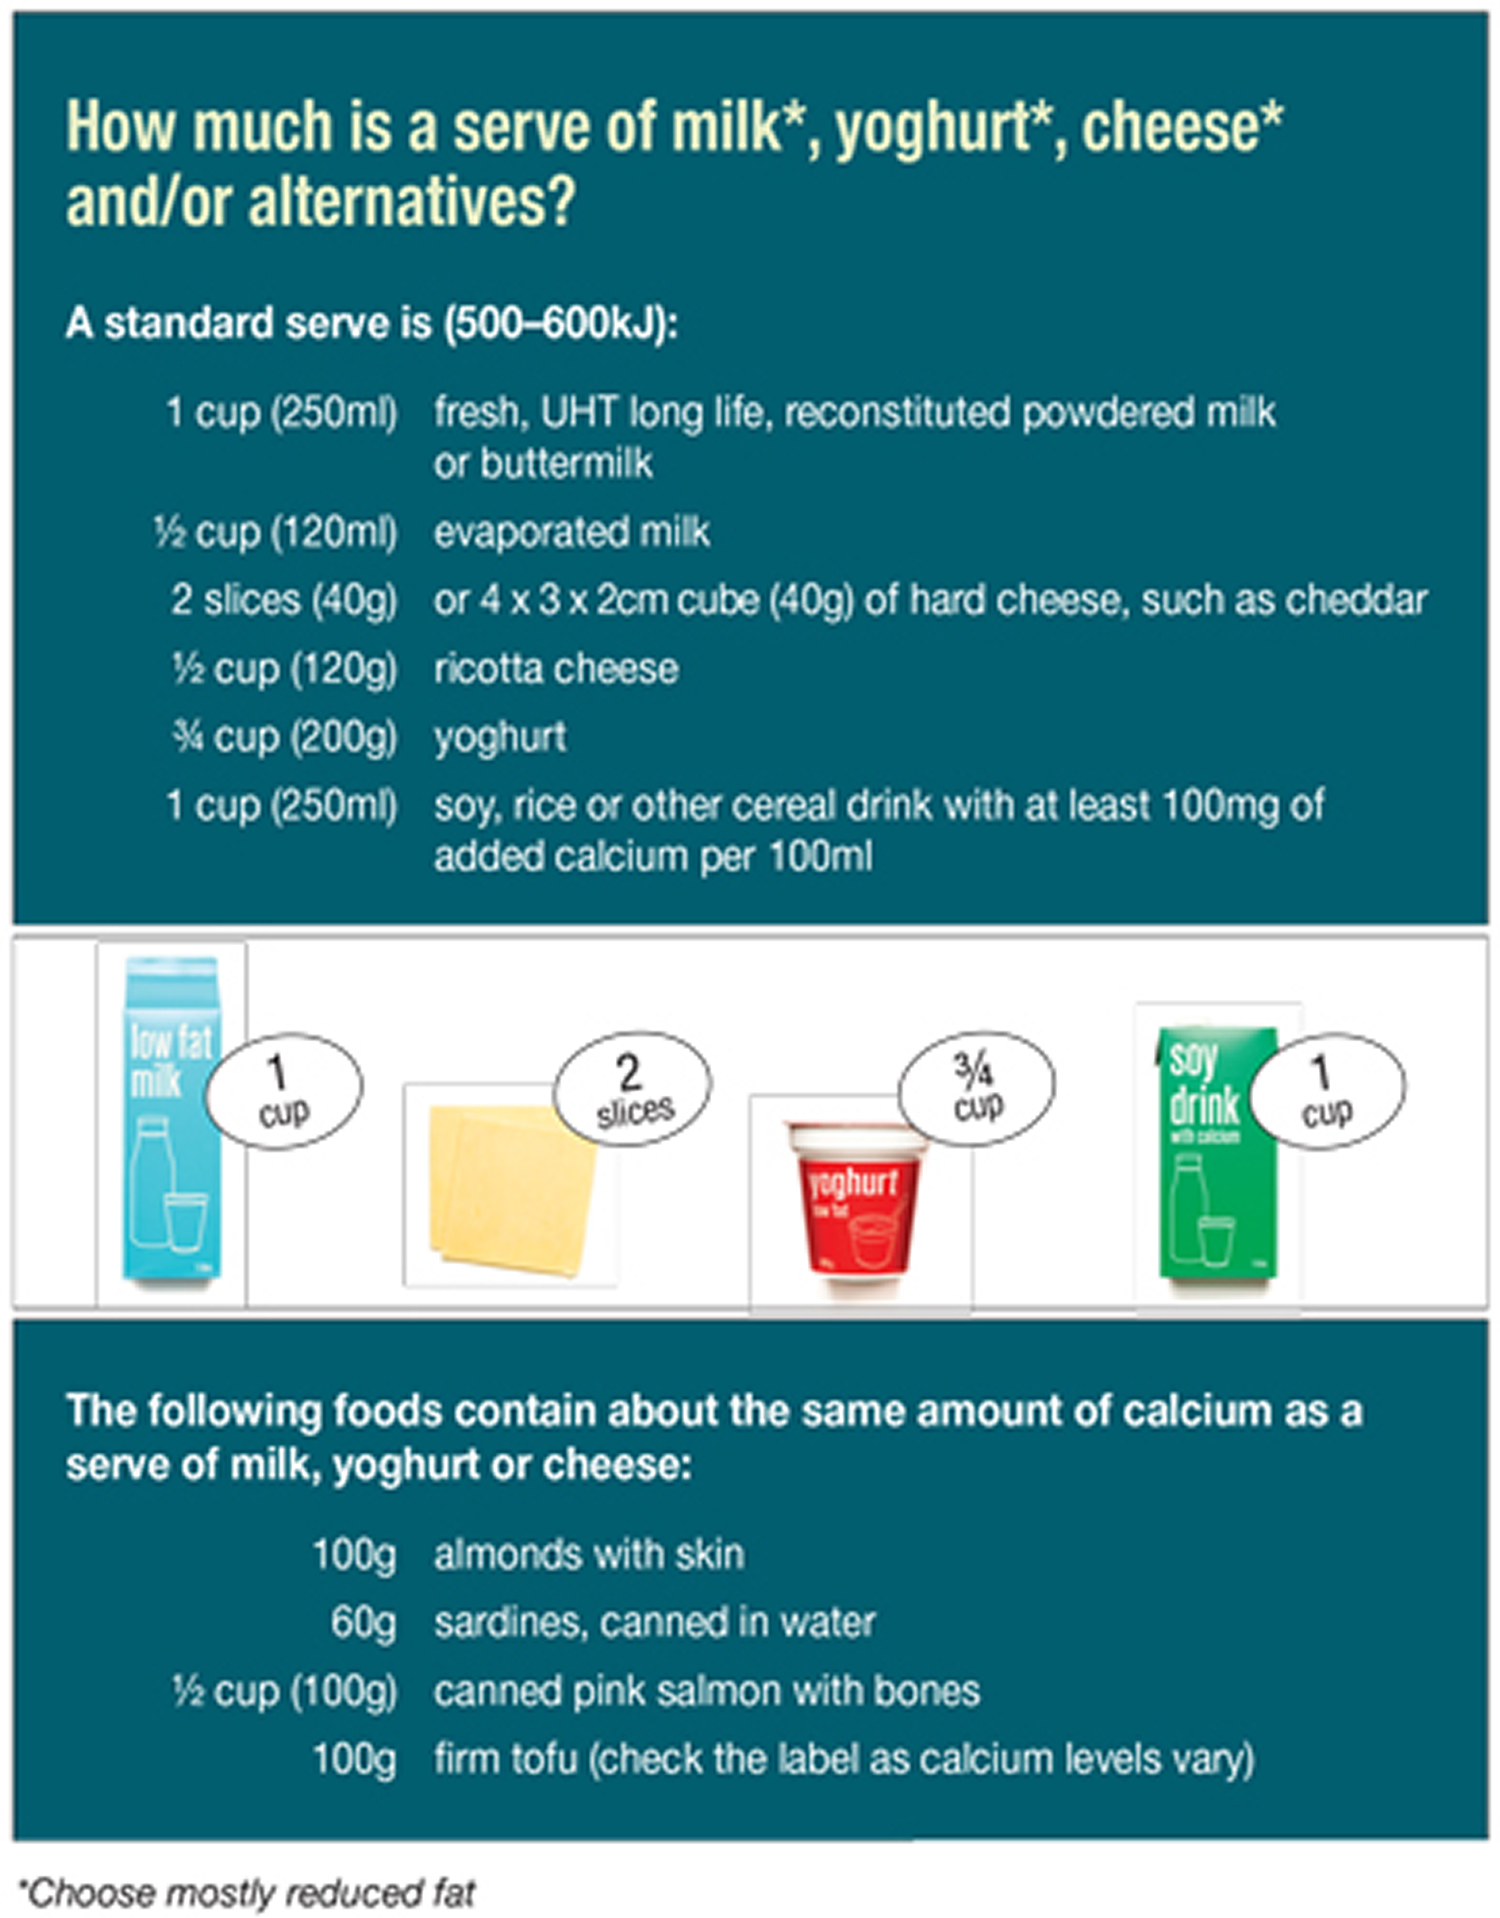 serving size of dairy, yogurt and cheese